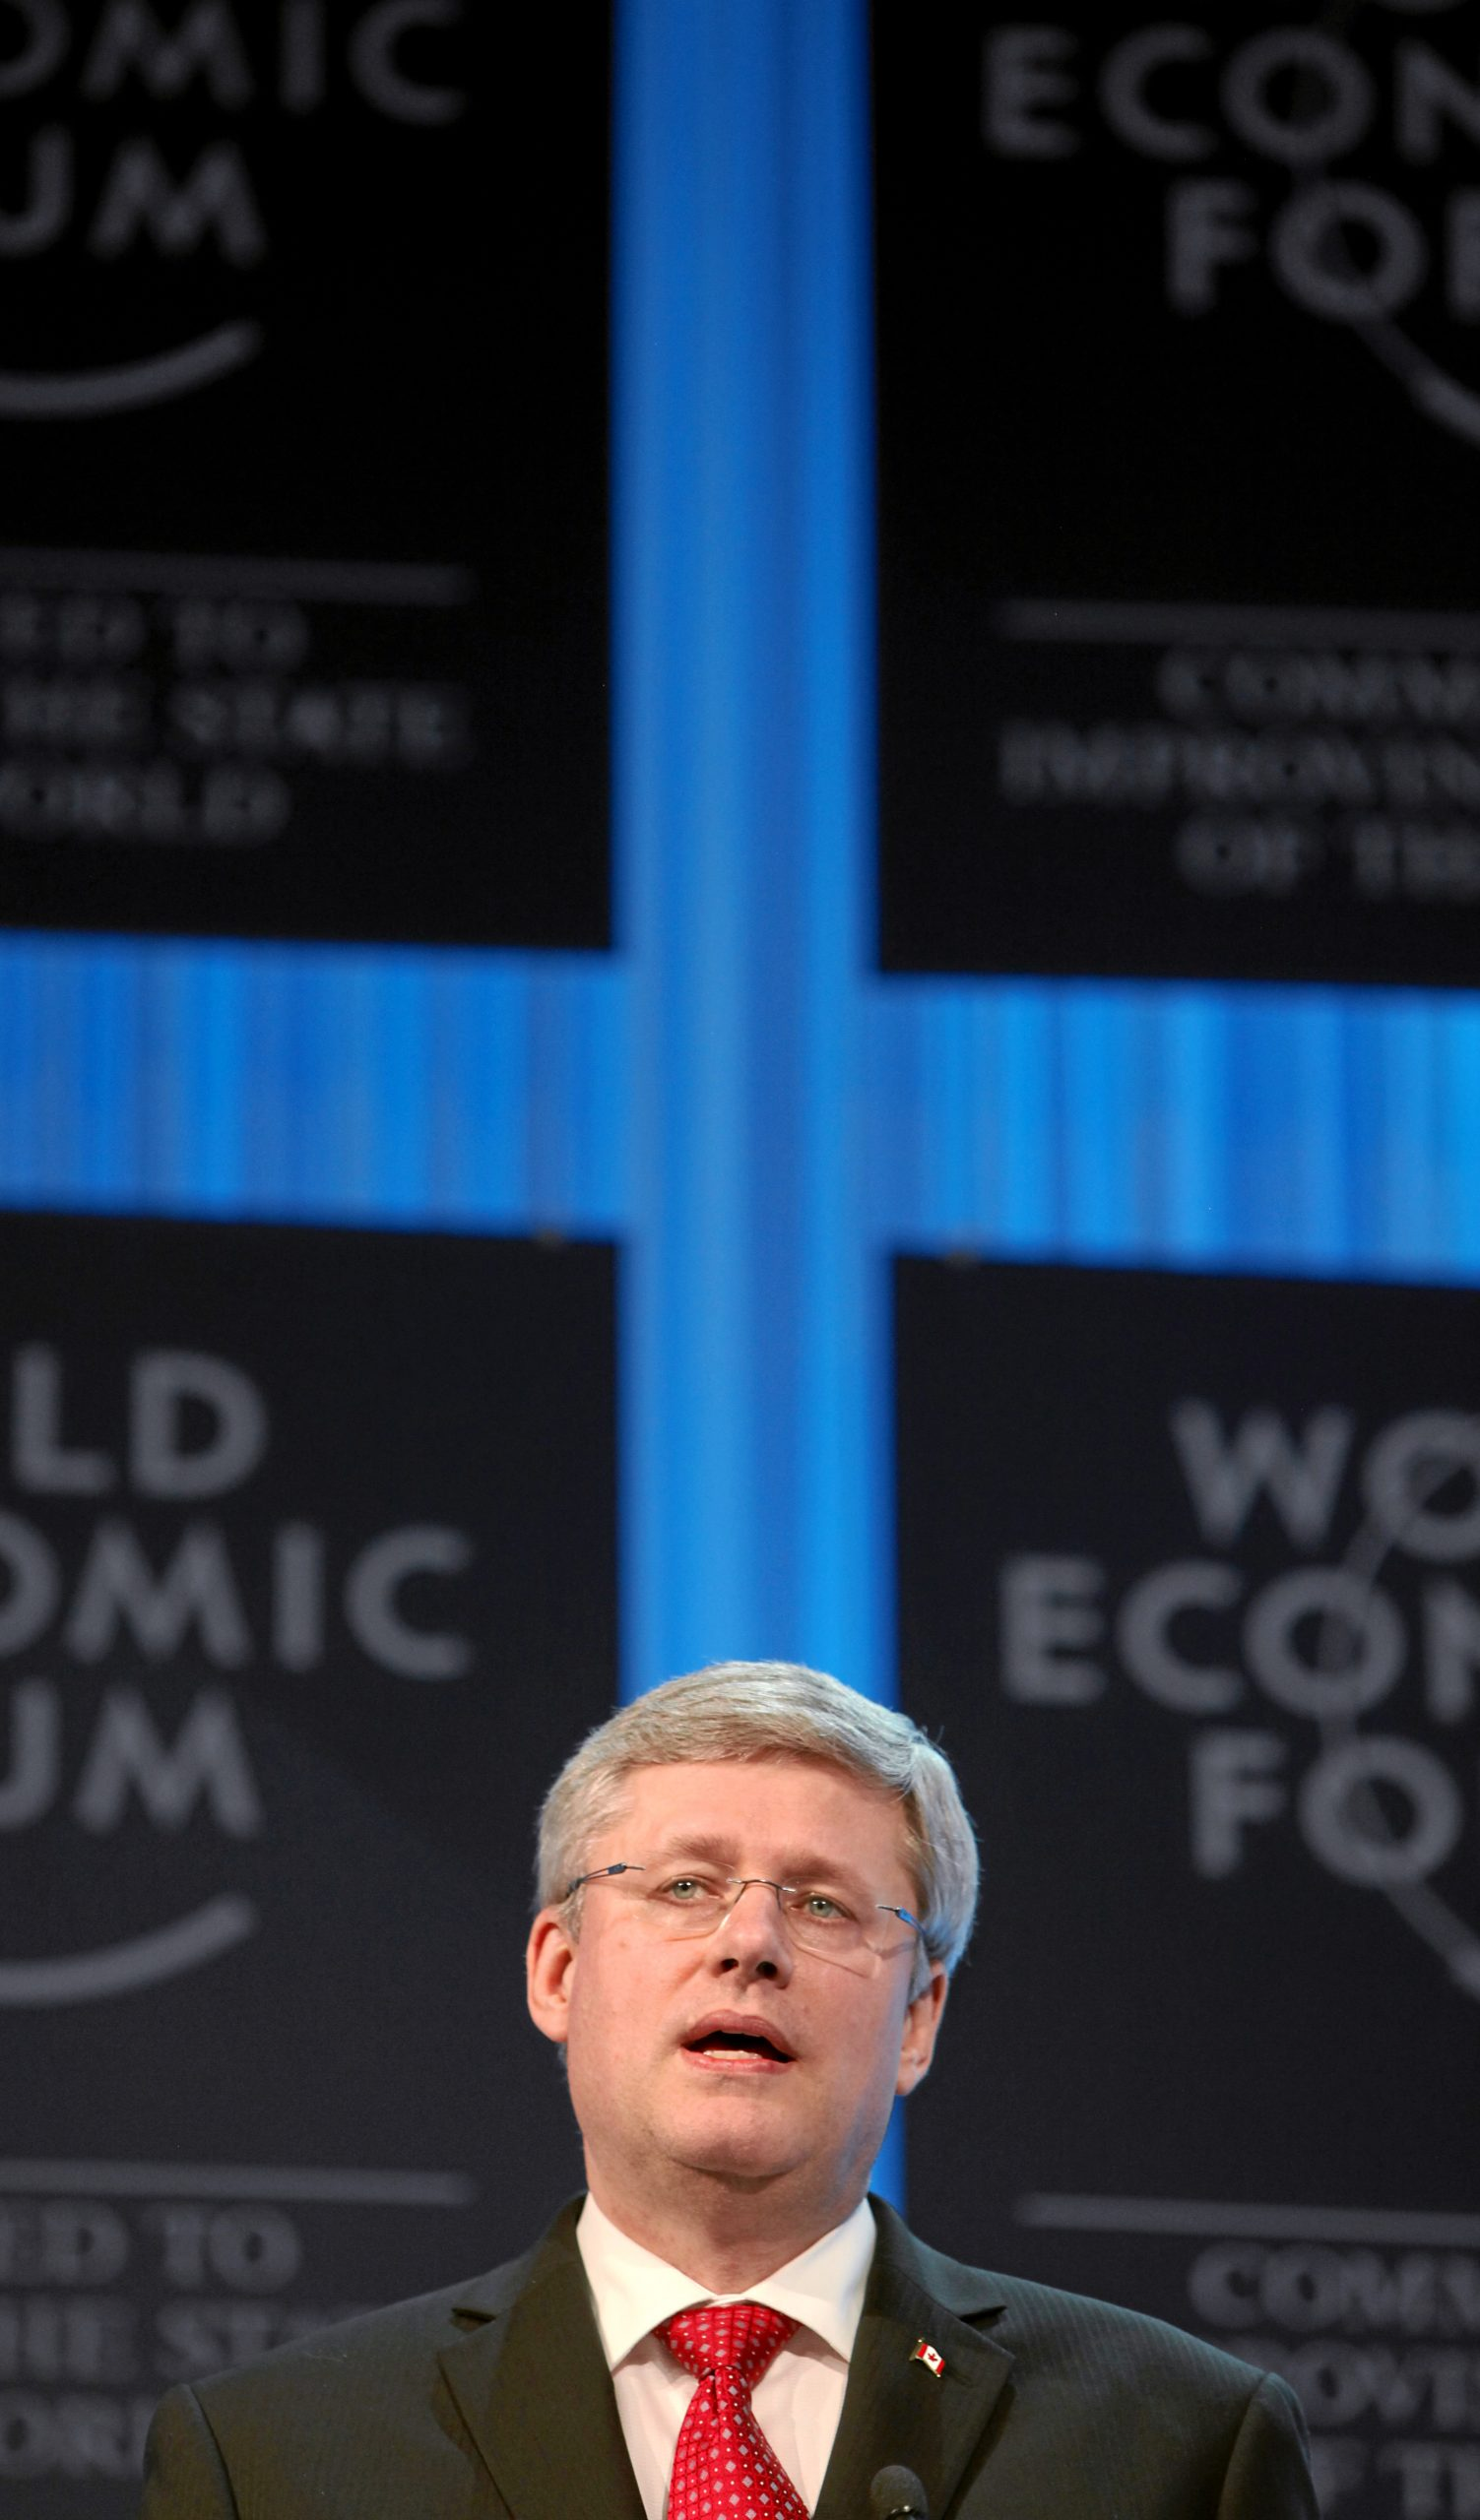 The Harper Government; a business or a democracy?